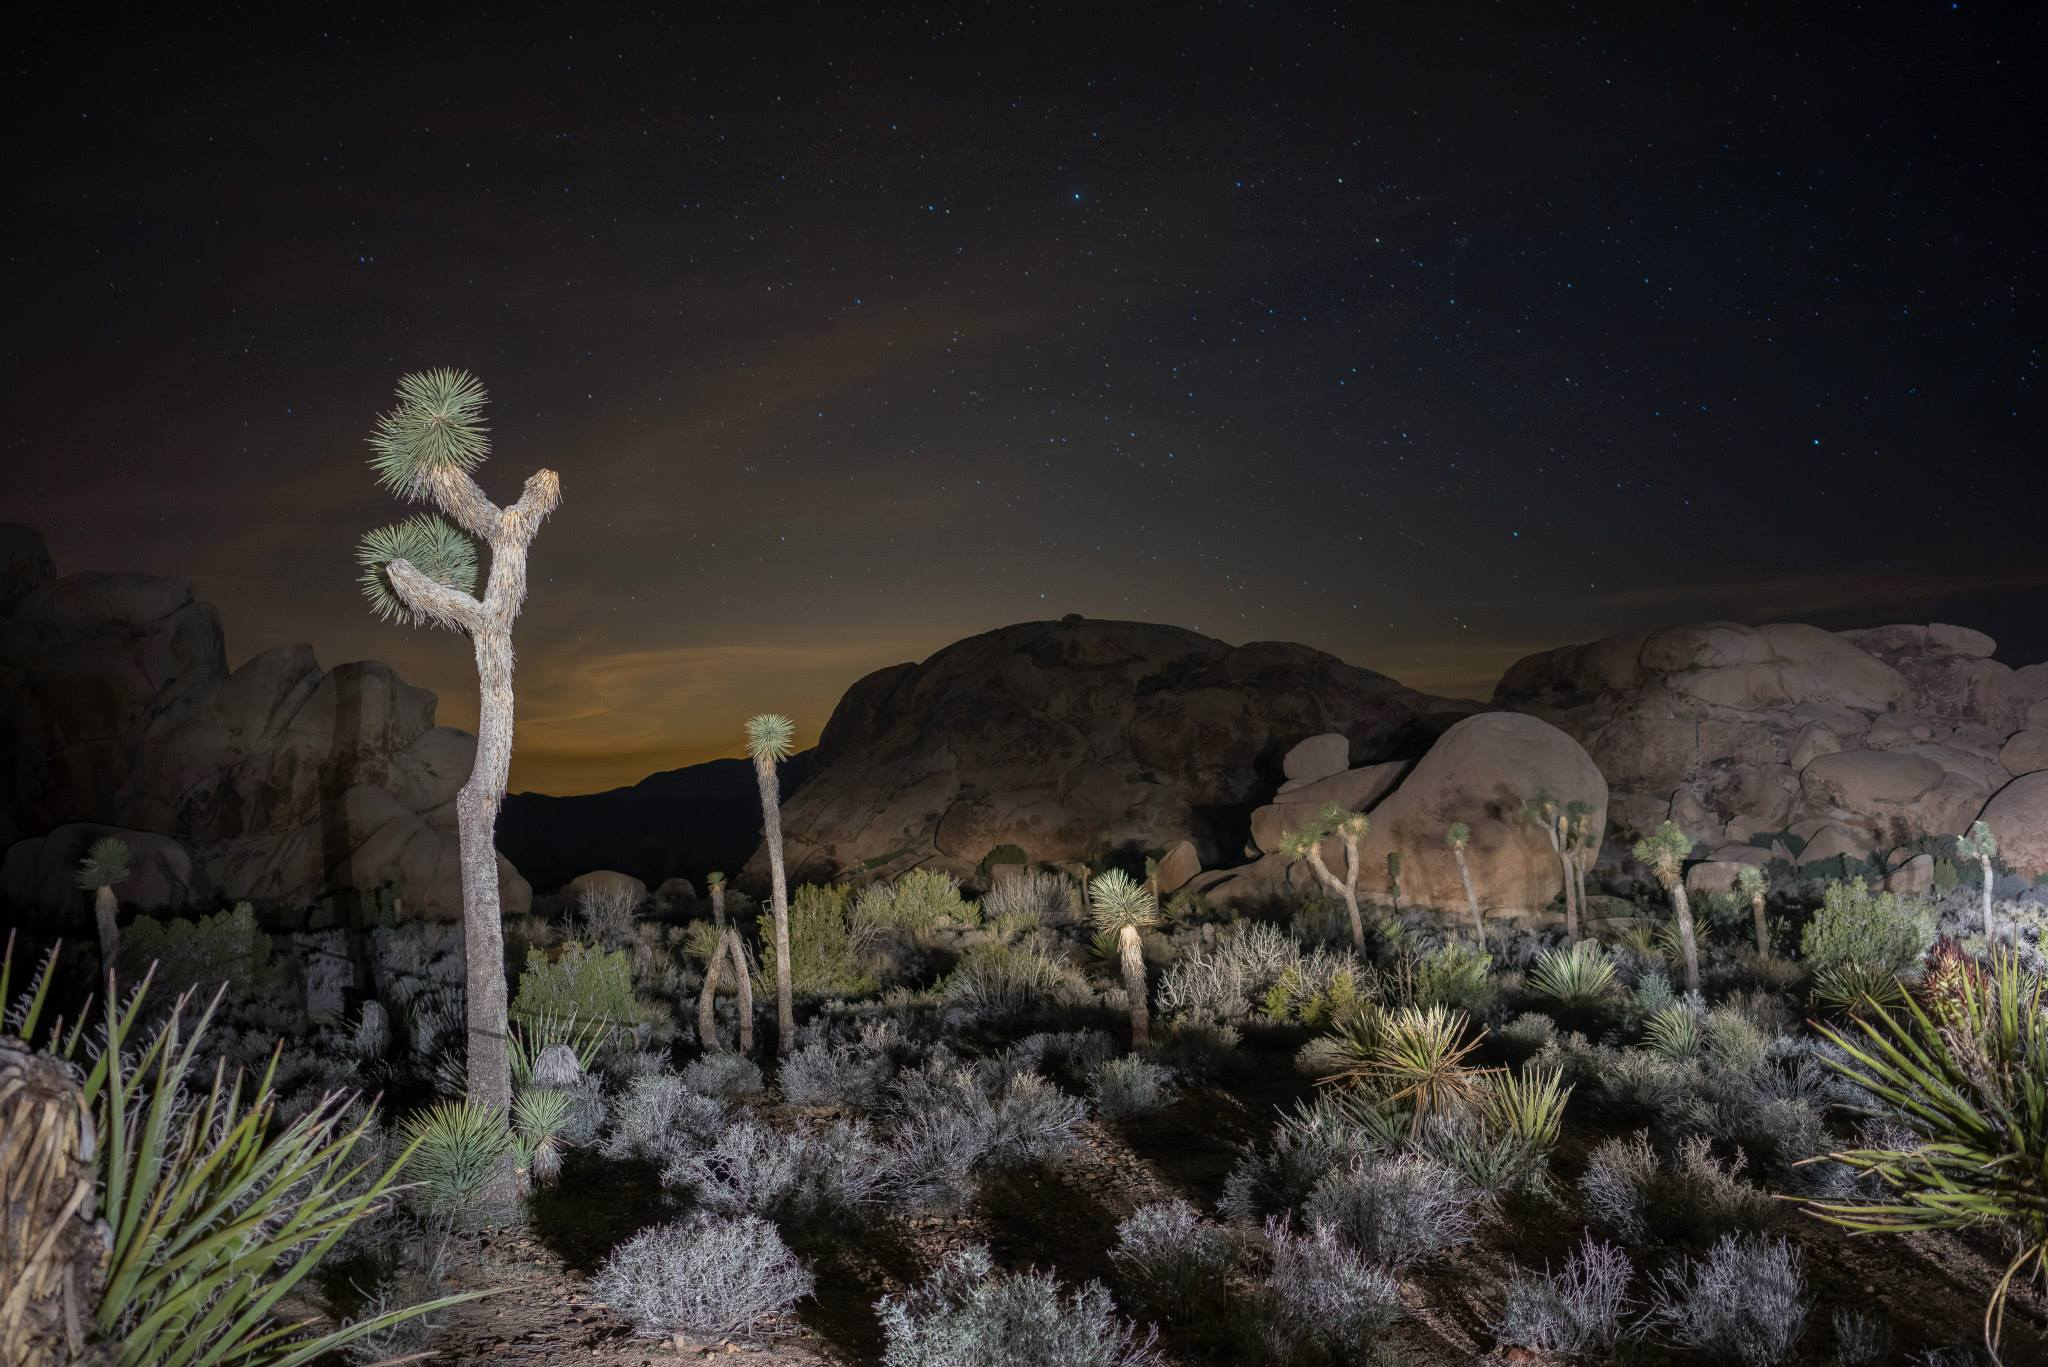 Joshua Tree Night Landscape